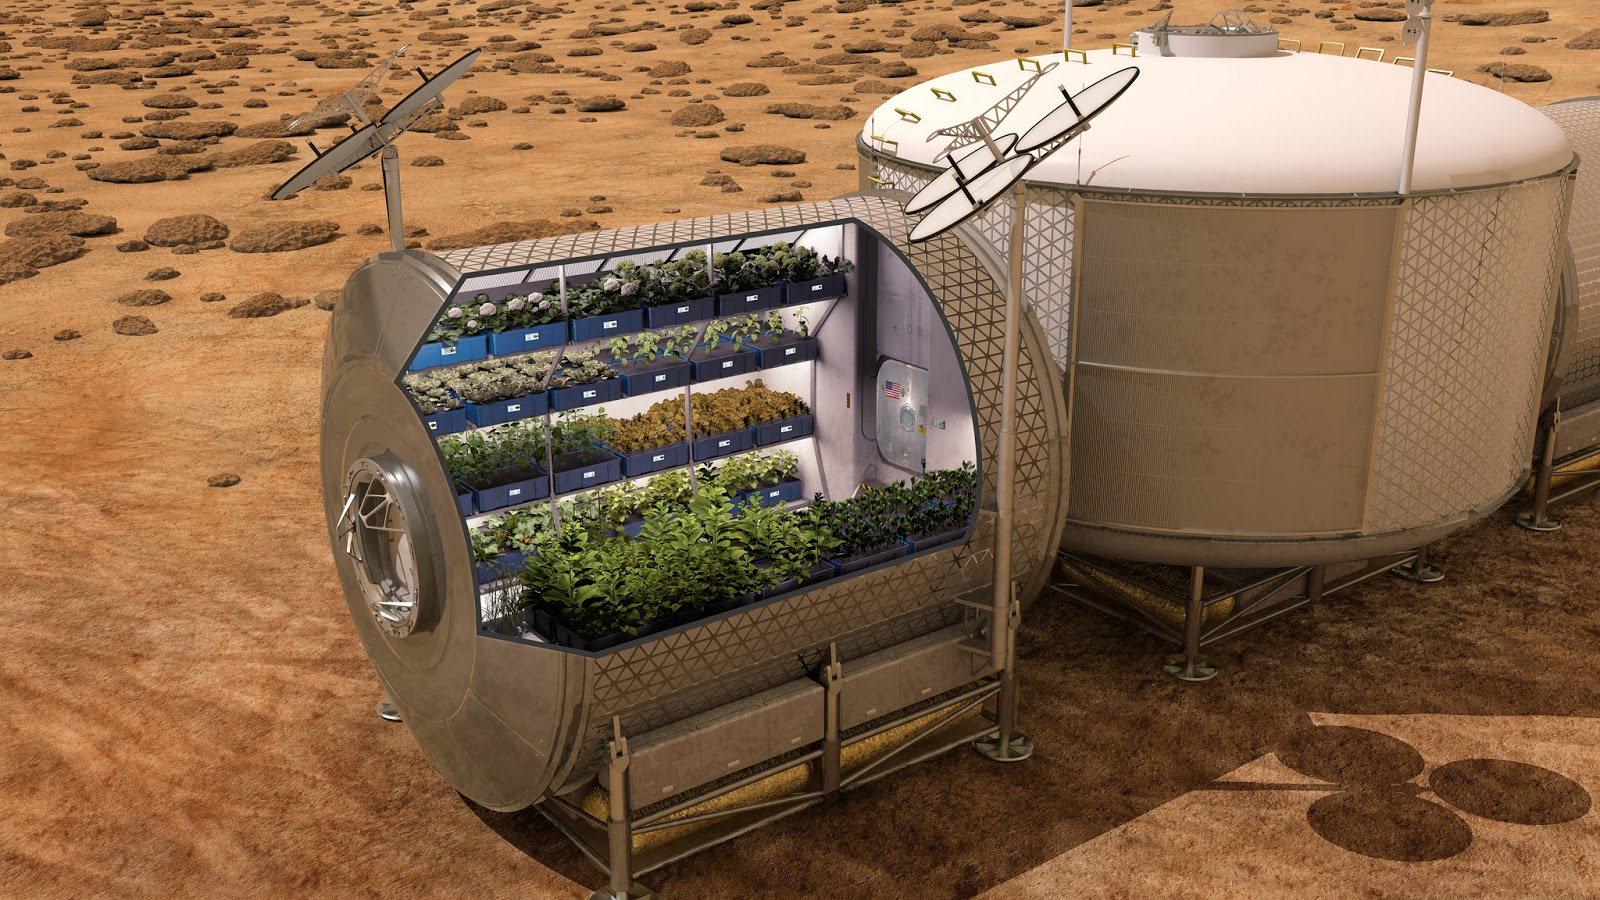 Mars greenhouse by NASA